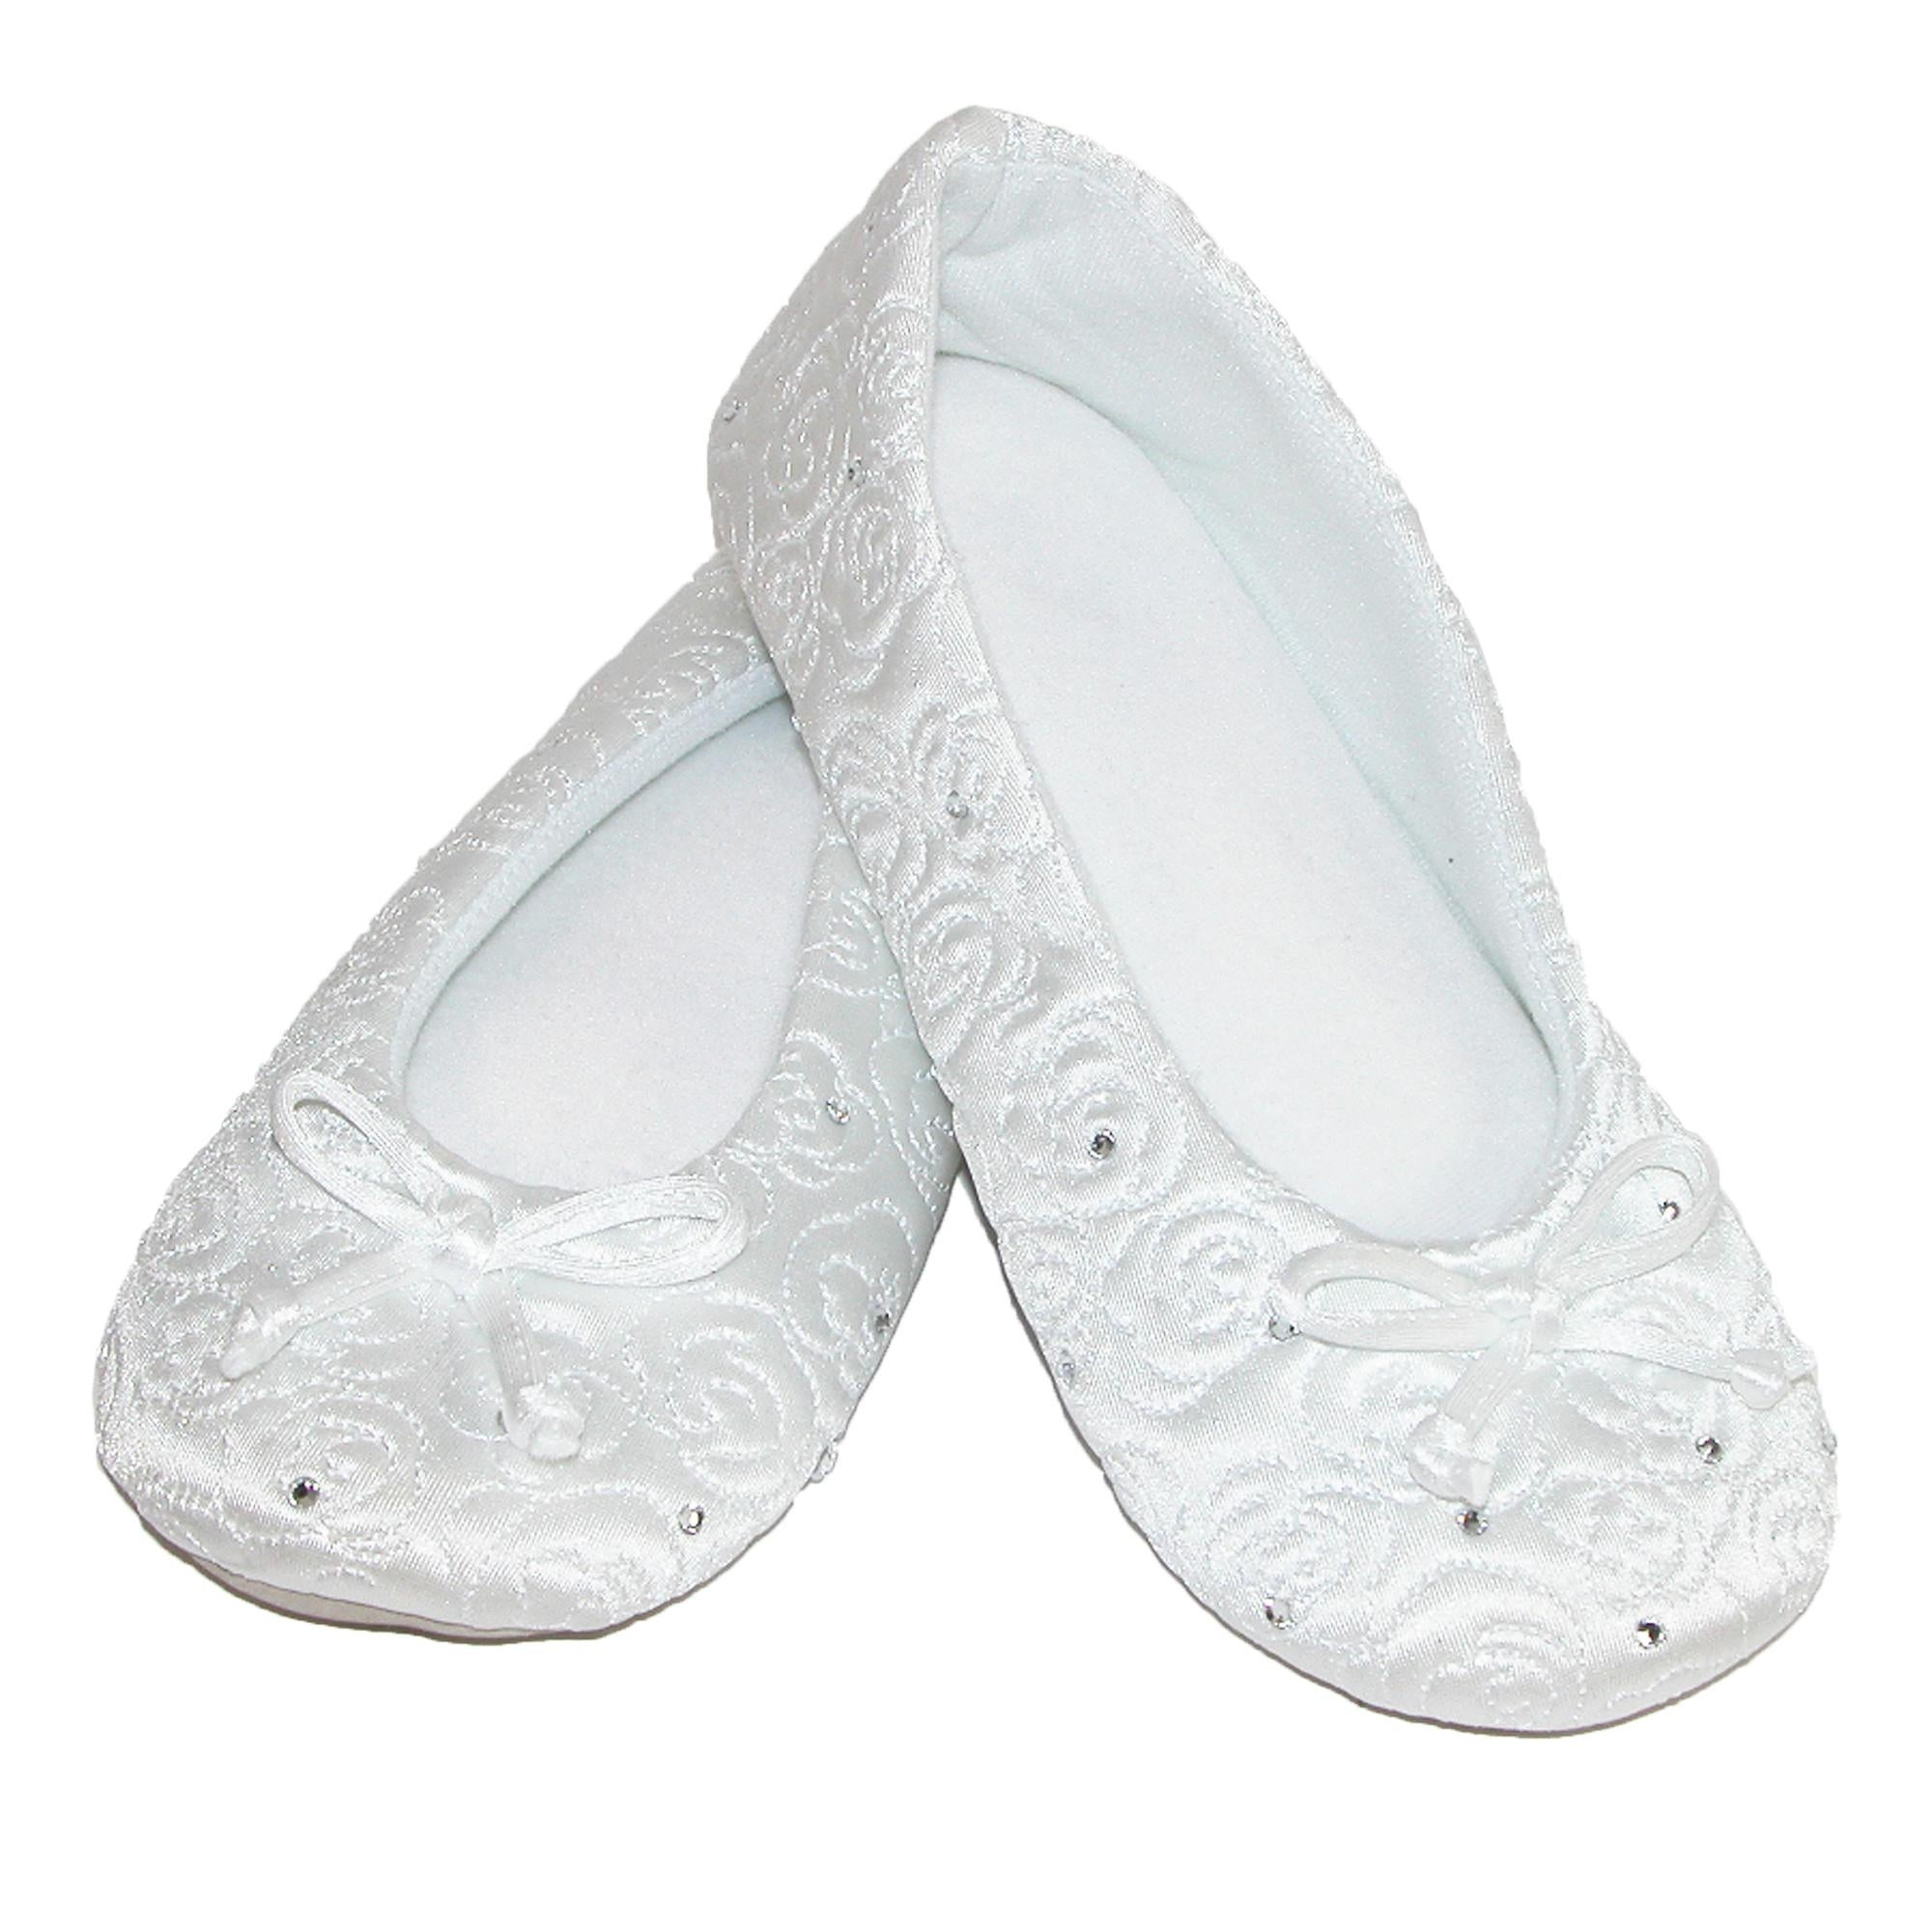 d904a7e974a4 Shop Isotoner Women s Terry Lined Rose Quilted Ballerina Slippers - Free  Shipping On Orders Over  45 - Overstock - 14281489